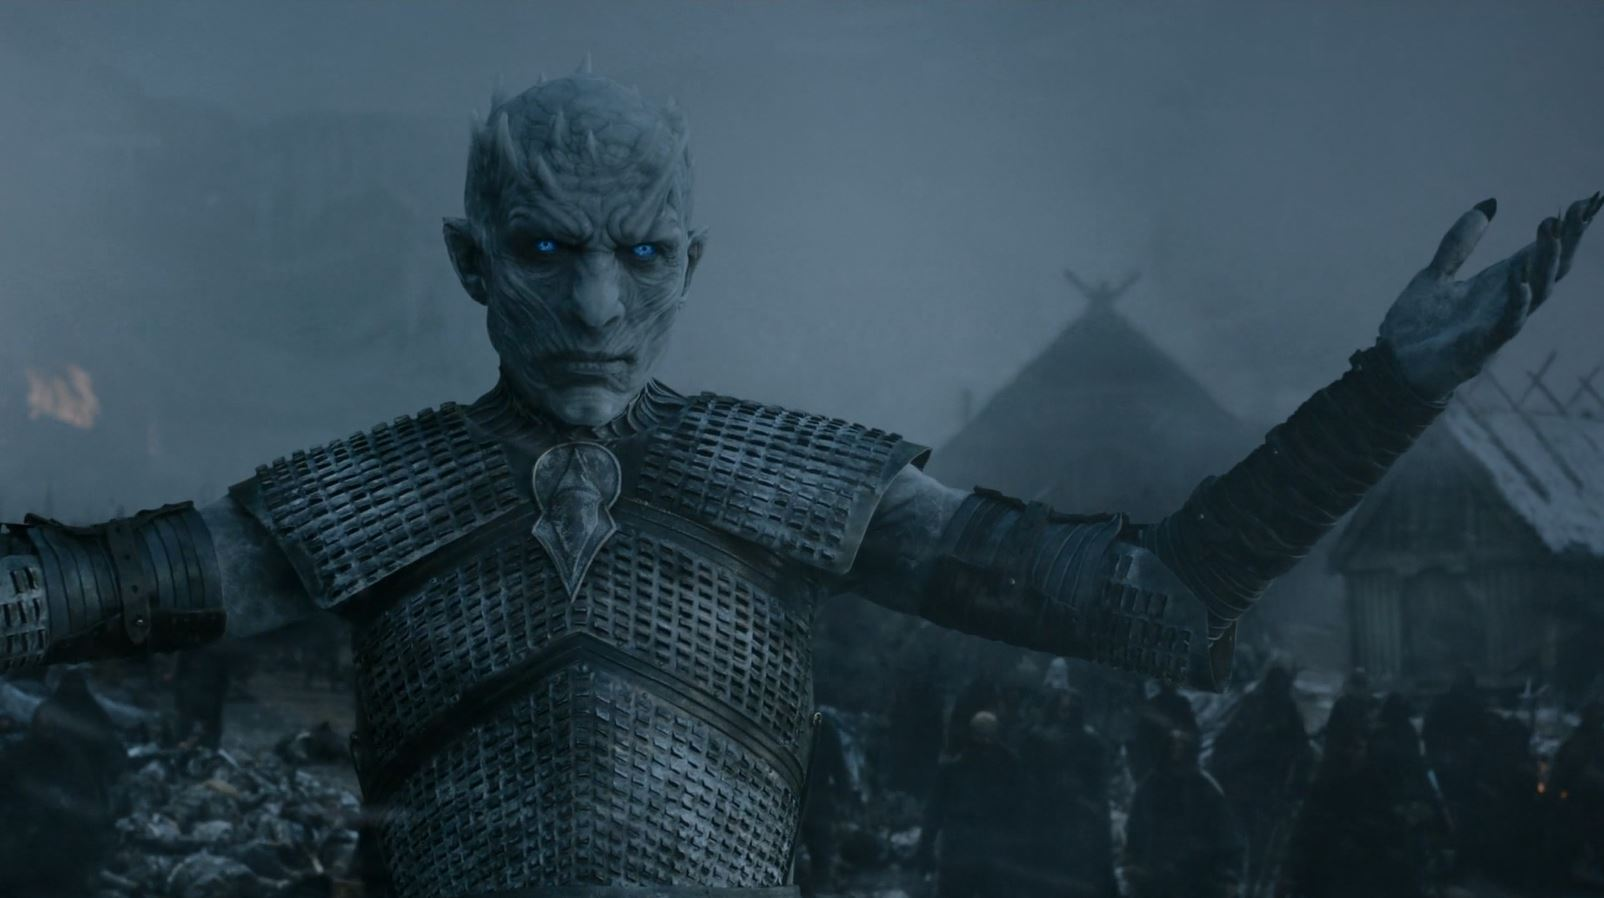 Night's King. Game of Thrones S5Ep8 Hardhome Review